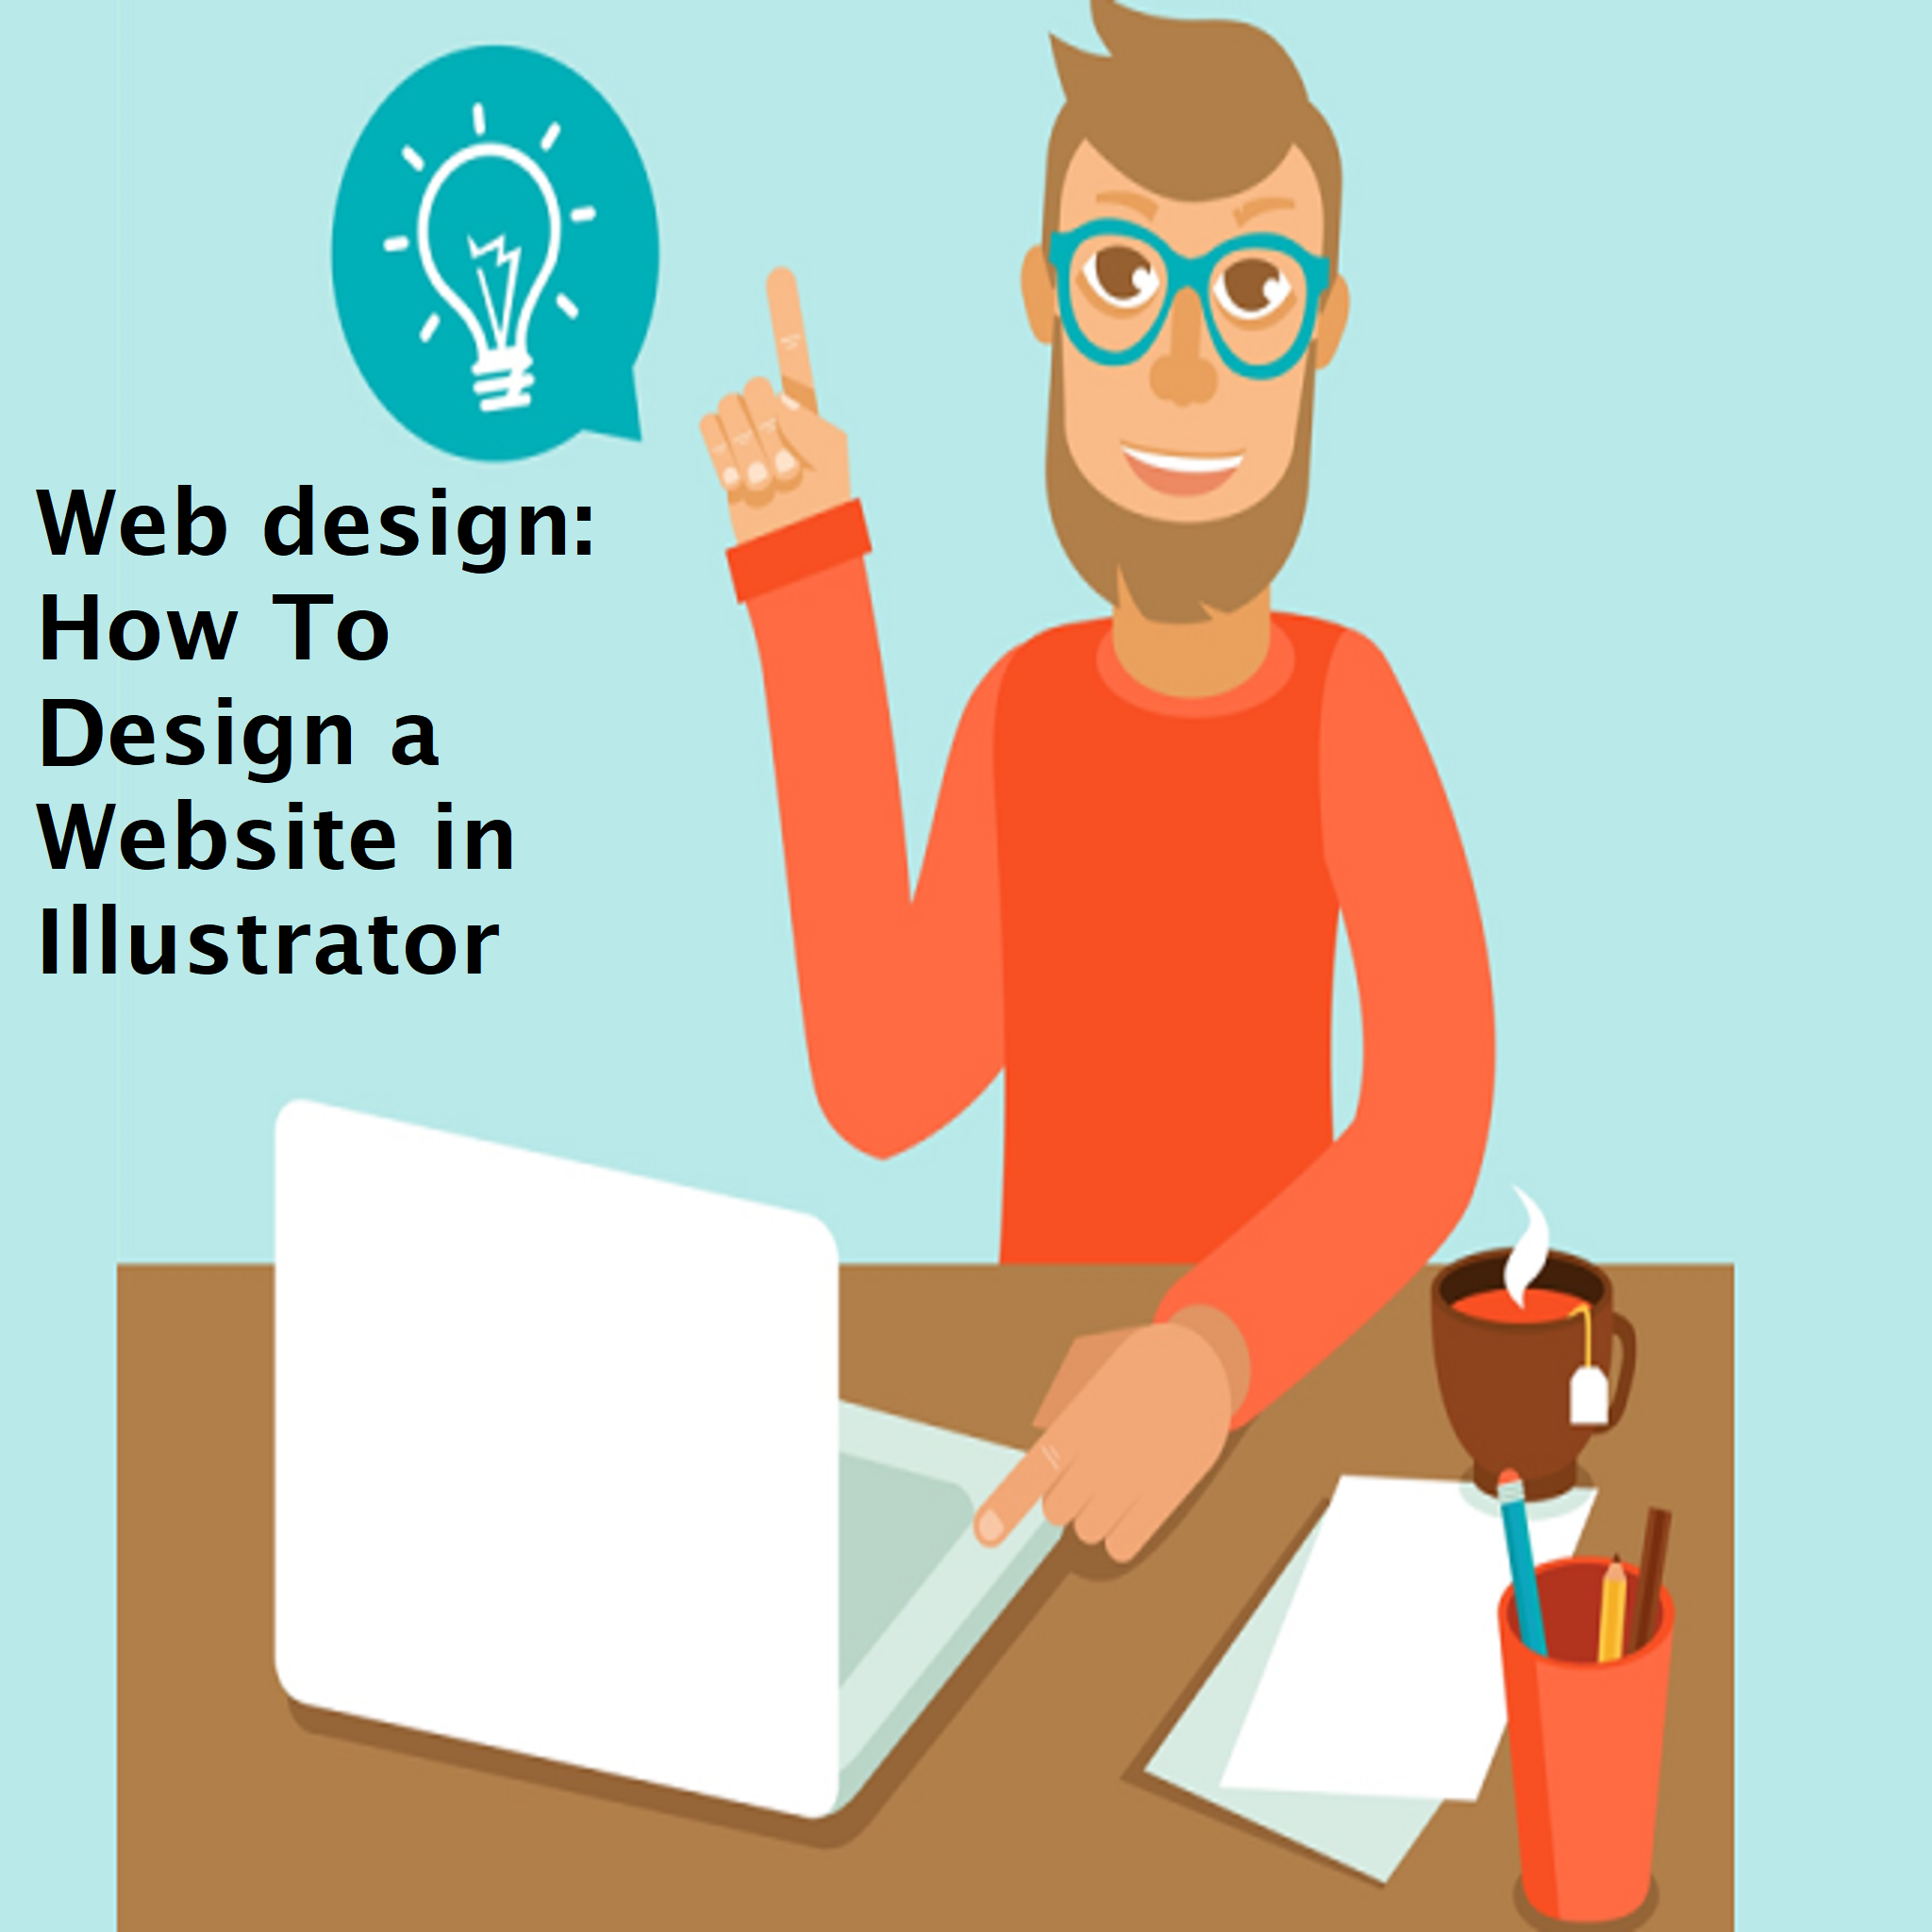 Web design: How To Design a Website in Illustrator